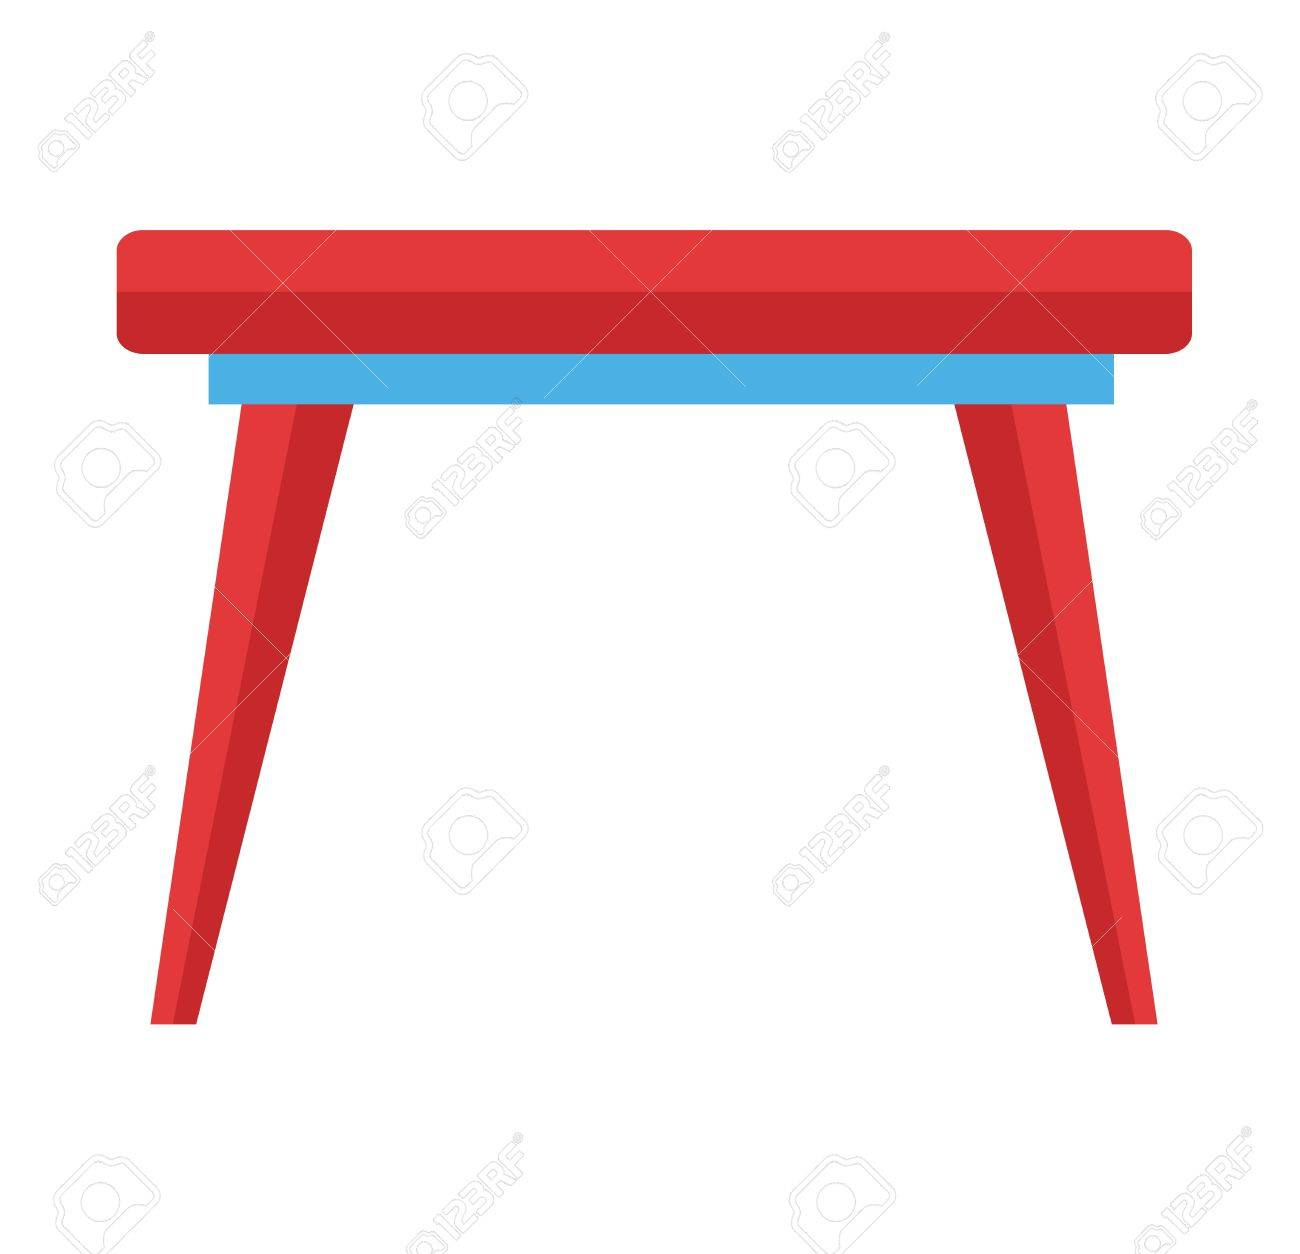 Cute Preschool Room Furniture Small Education And Colorful Table For Little Kids Interior Wooden